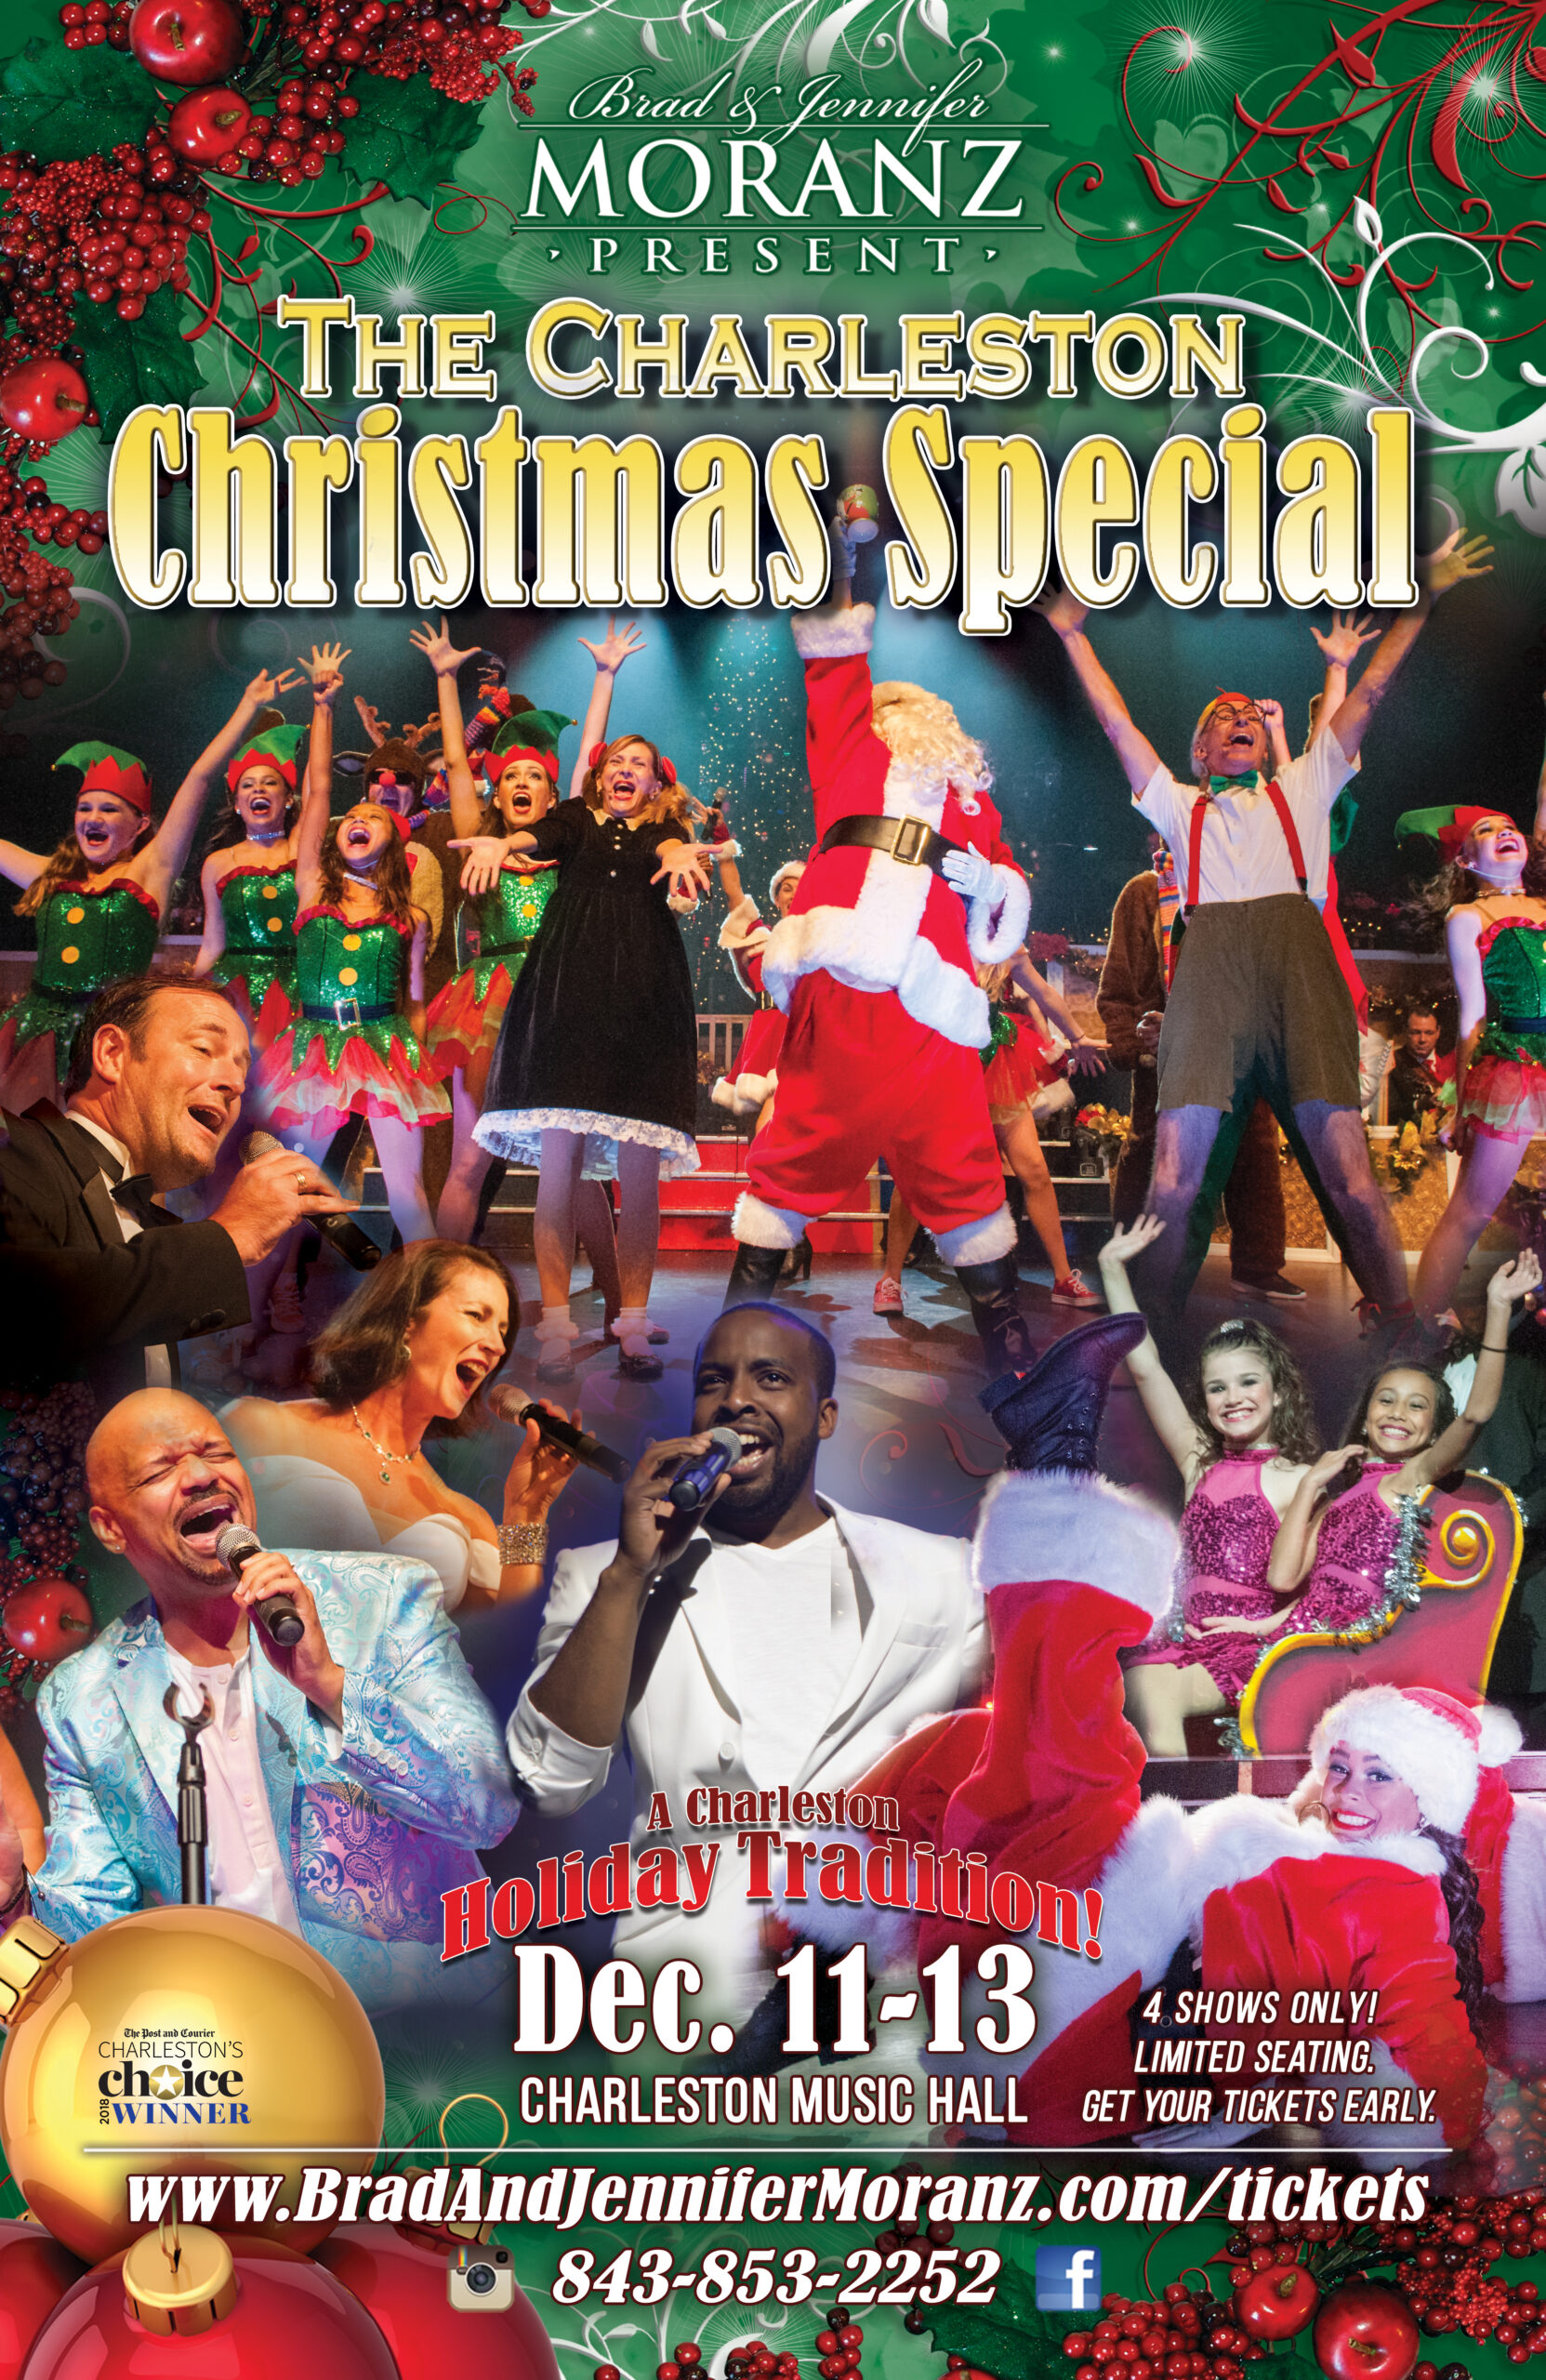 The Charleston Christmas Special